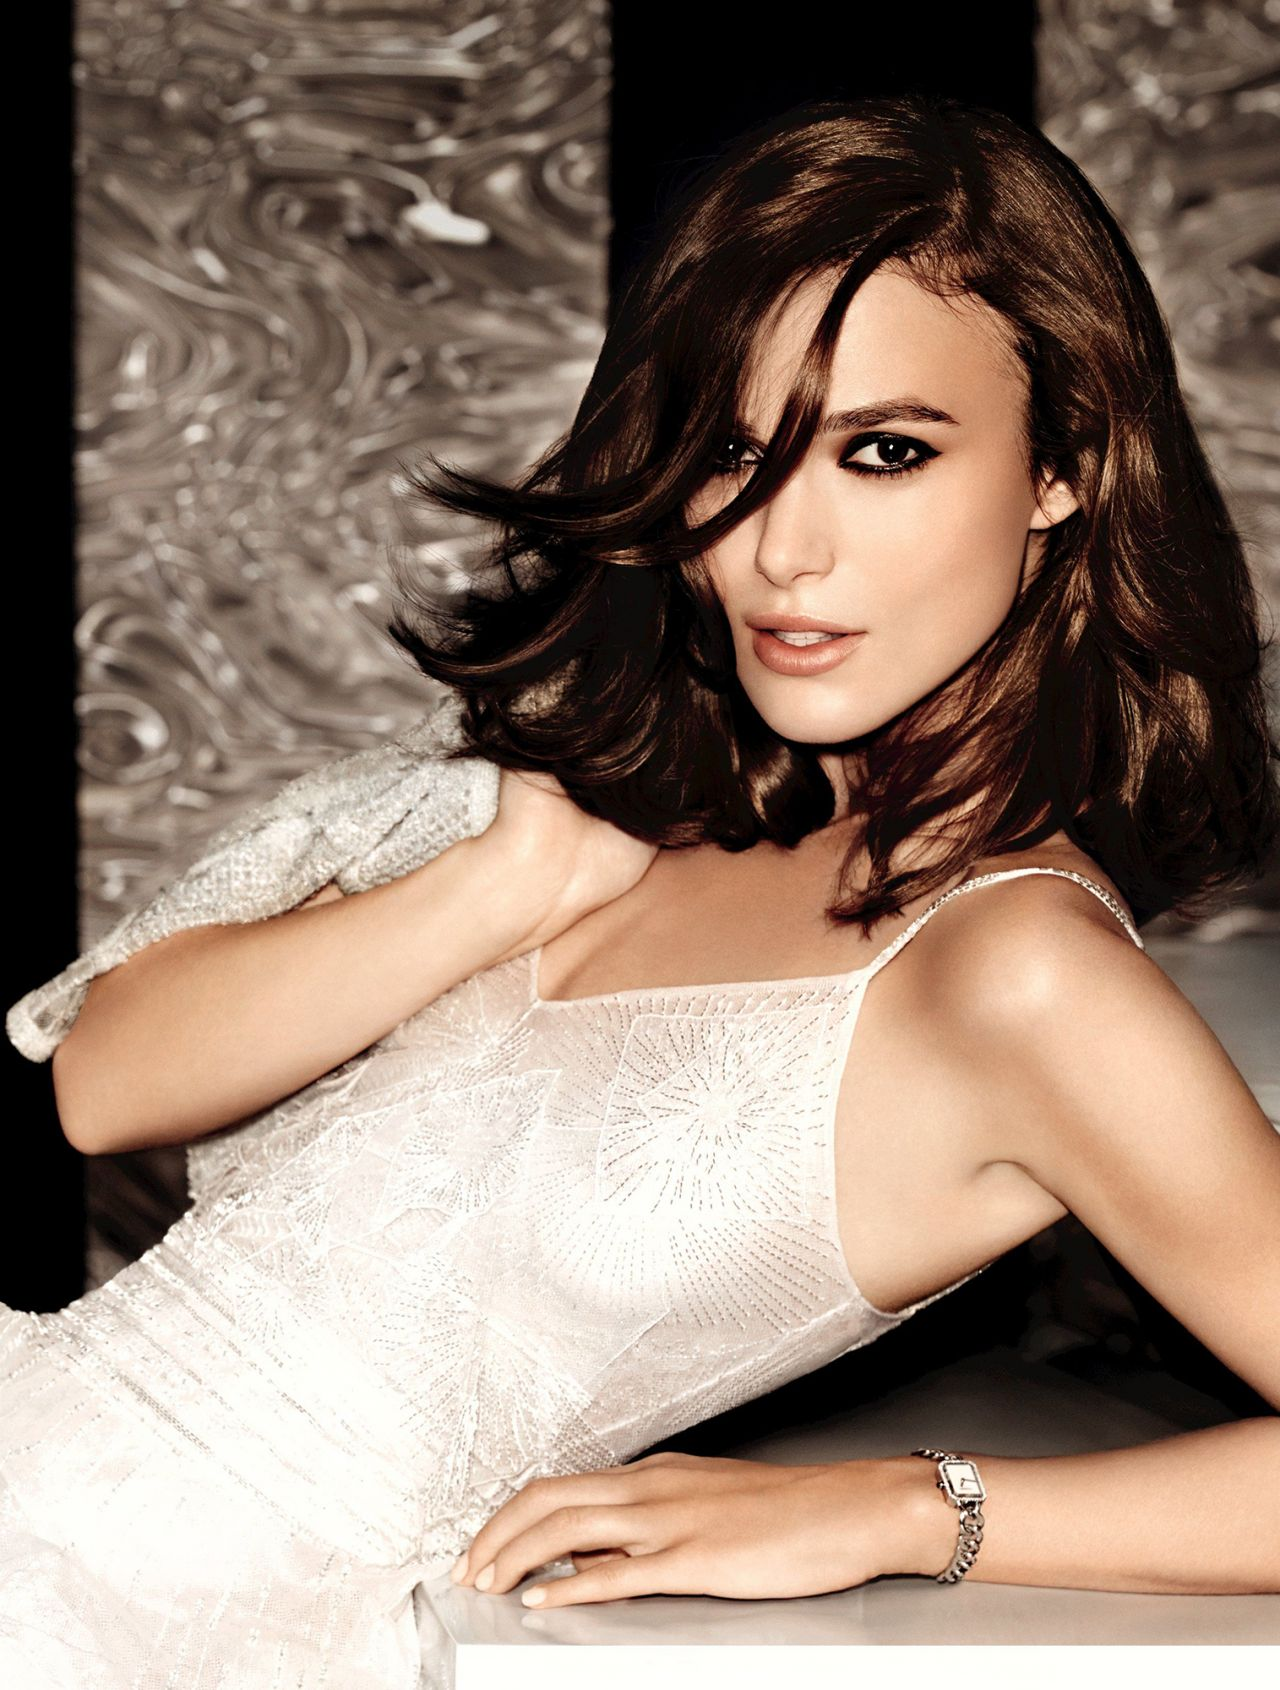 Keira Knightley - Promoshoot for Chanel Coco Mademoiselle - Spring/Summer 2014 (by Mario Testino)